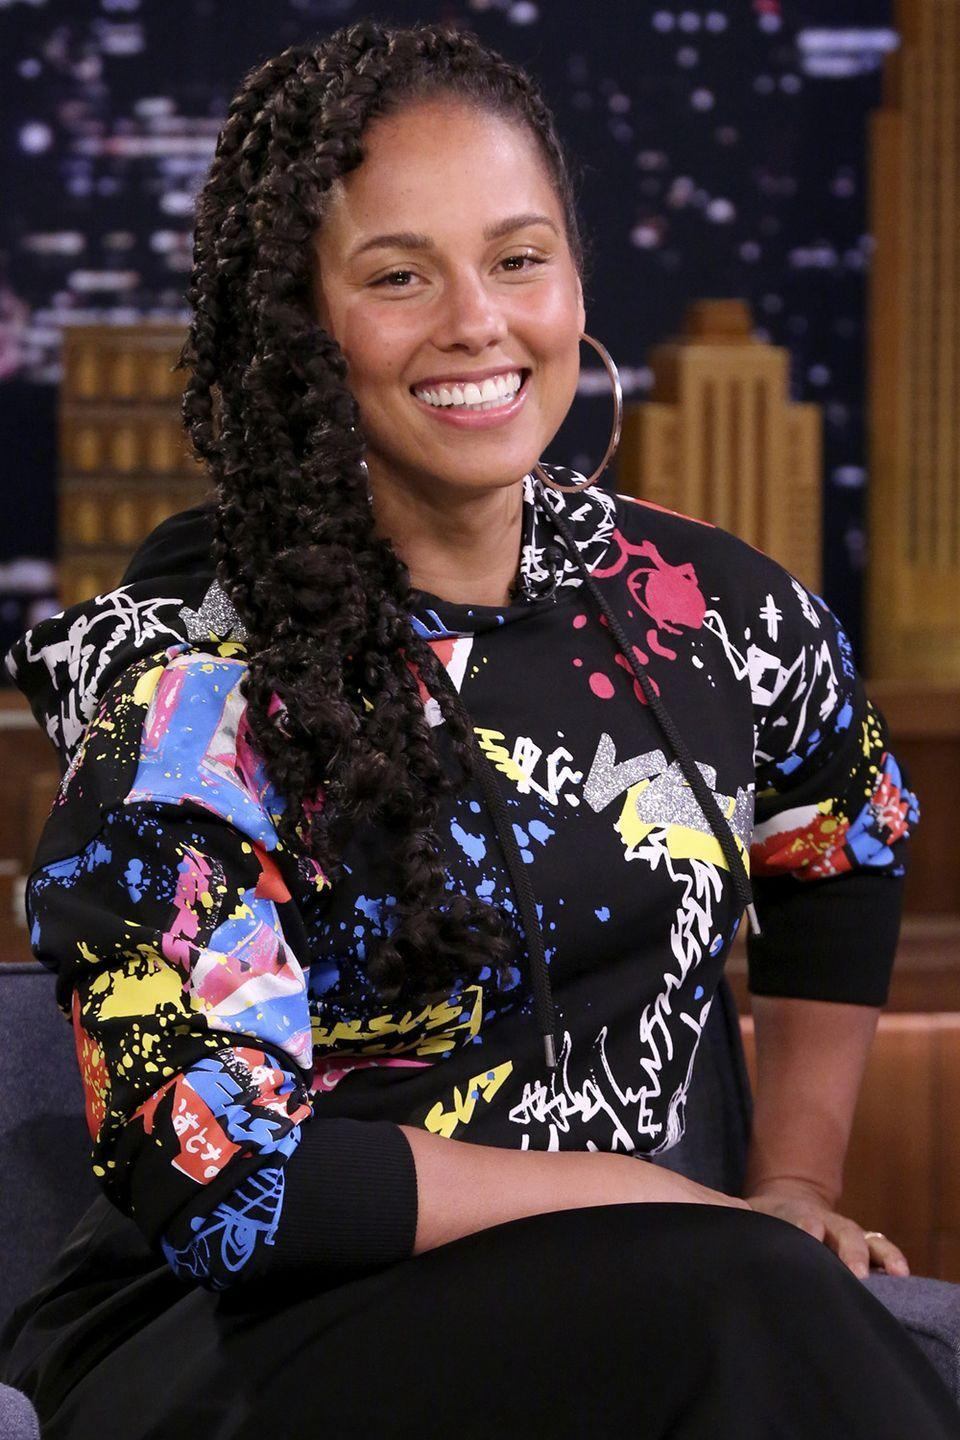 """<p><strong>Born</strong>: Alicia Augello-Cook </p><p>The singer/songwriter told <em><a href=""""http://www.foxnews.com/story/2007/11/11/alicia-keys-mom-helped-pick-stage-name.html"""" rel=""""nofollow noopener"""" target=""""_blank"""" data-ylk=""""slk:Newsweek"""" class=""""link rapid-noclick-resp"""">Newsweek</a></em> she wanted to to change her last name to be better suited for the stage, and was considering taking on the title """"Alicia Wild""""—but her mom said no. <strong>""""</strong>She said, 'It sounds like you're a stripper,""""' said Keys, so the singer considered a more musical moniker. """"It's like the piano keys. And it can open so many doors,"""" she explained.</p>"""